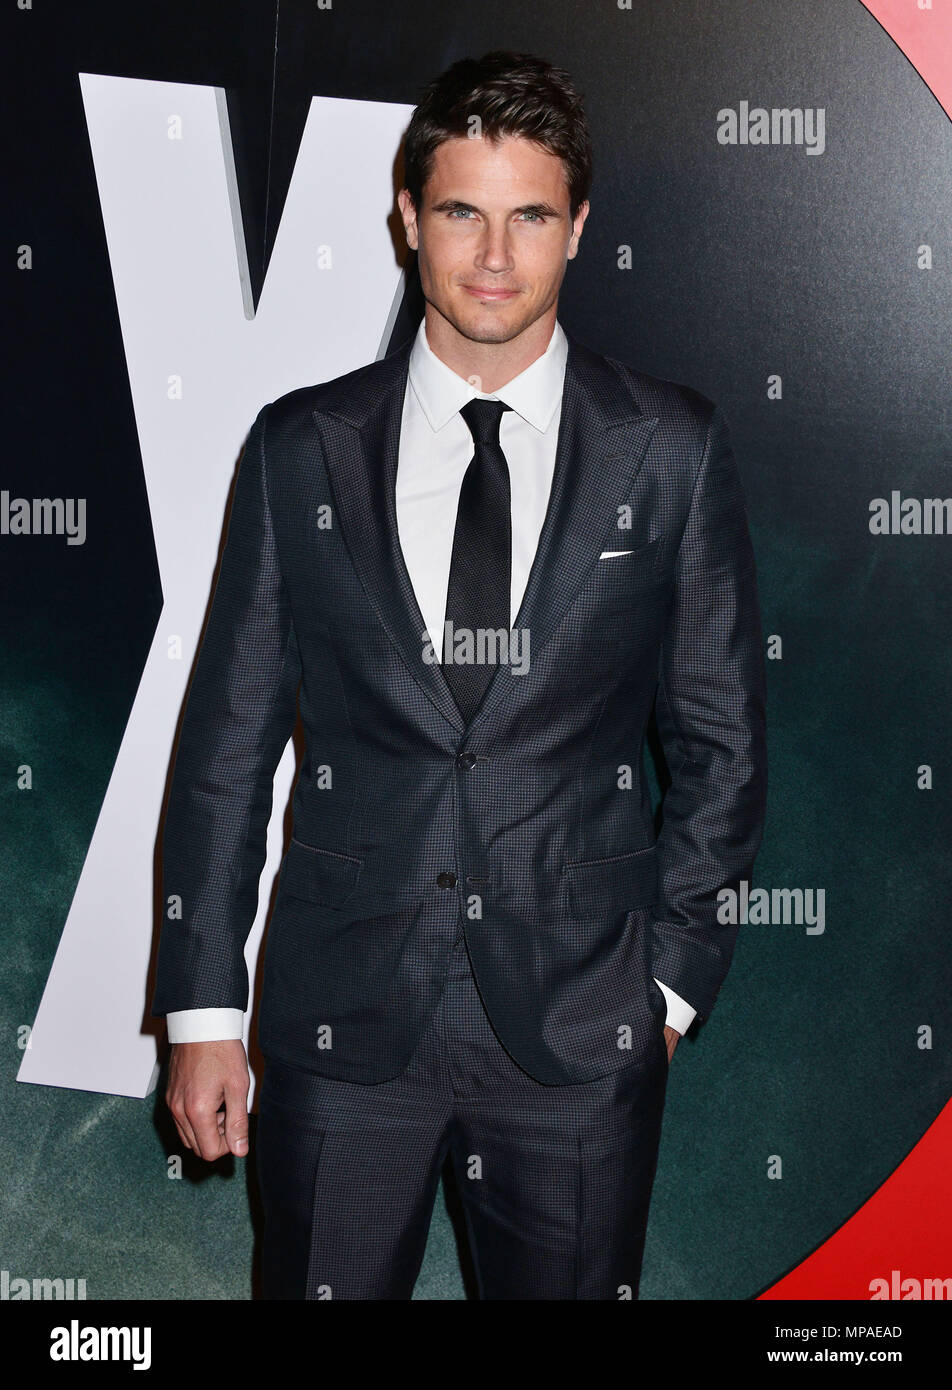 Robbie Amell 040  at The X-Files Premiere at California Science Center in Los Angeles, CA  January 12, 2016.Robbie Amell 040 ------------- Red Carpet Event, Vertical, USA, Film Industry, Celebrities,  Photography, Bestof, Arts Culture and Entertainment, Topix Celebrities fashion /  Vertical, Best of, Event in Hollywood Life - California,  Red Carpet and backstage, USA, Film Industry, Celebrities,  movie celebrities, TV celebrities, Music celebrities, Photography, Bestof, Arts Culture and Entertainment,  Topix, Three Quarters, vertical, one person,, from the year , 2016, inquiry tsuni@Gamma-USA - Stock Image